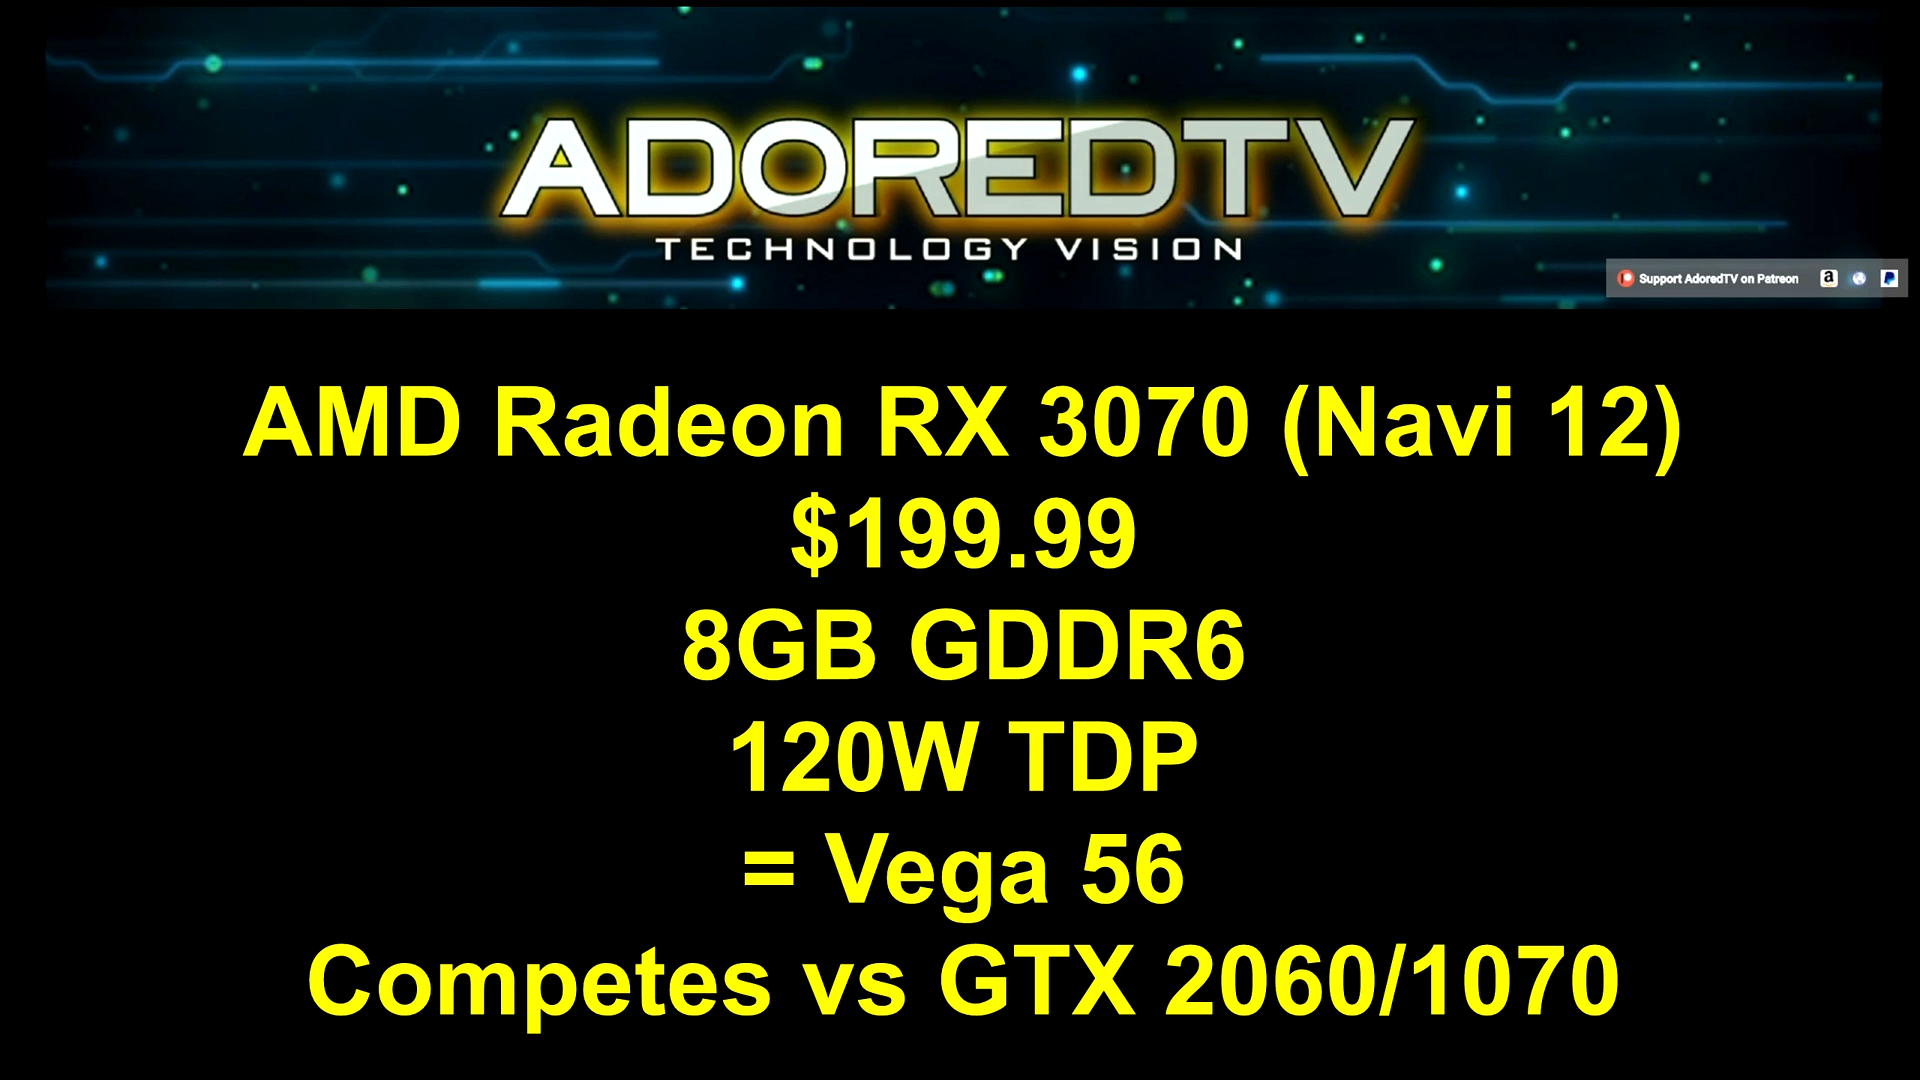 AMD Navi RX 3080, 3070 & 3060 Specs & Prices Leaked - RTX